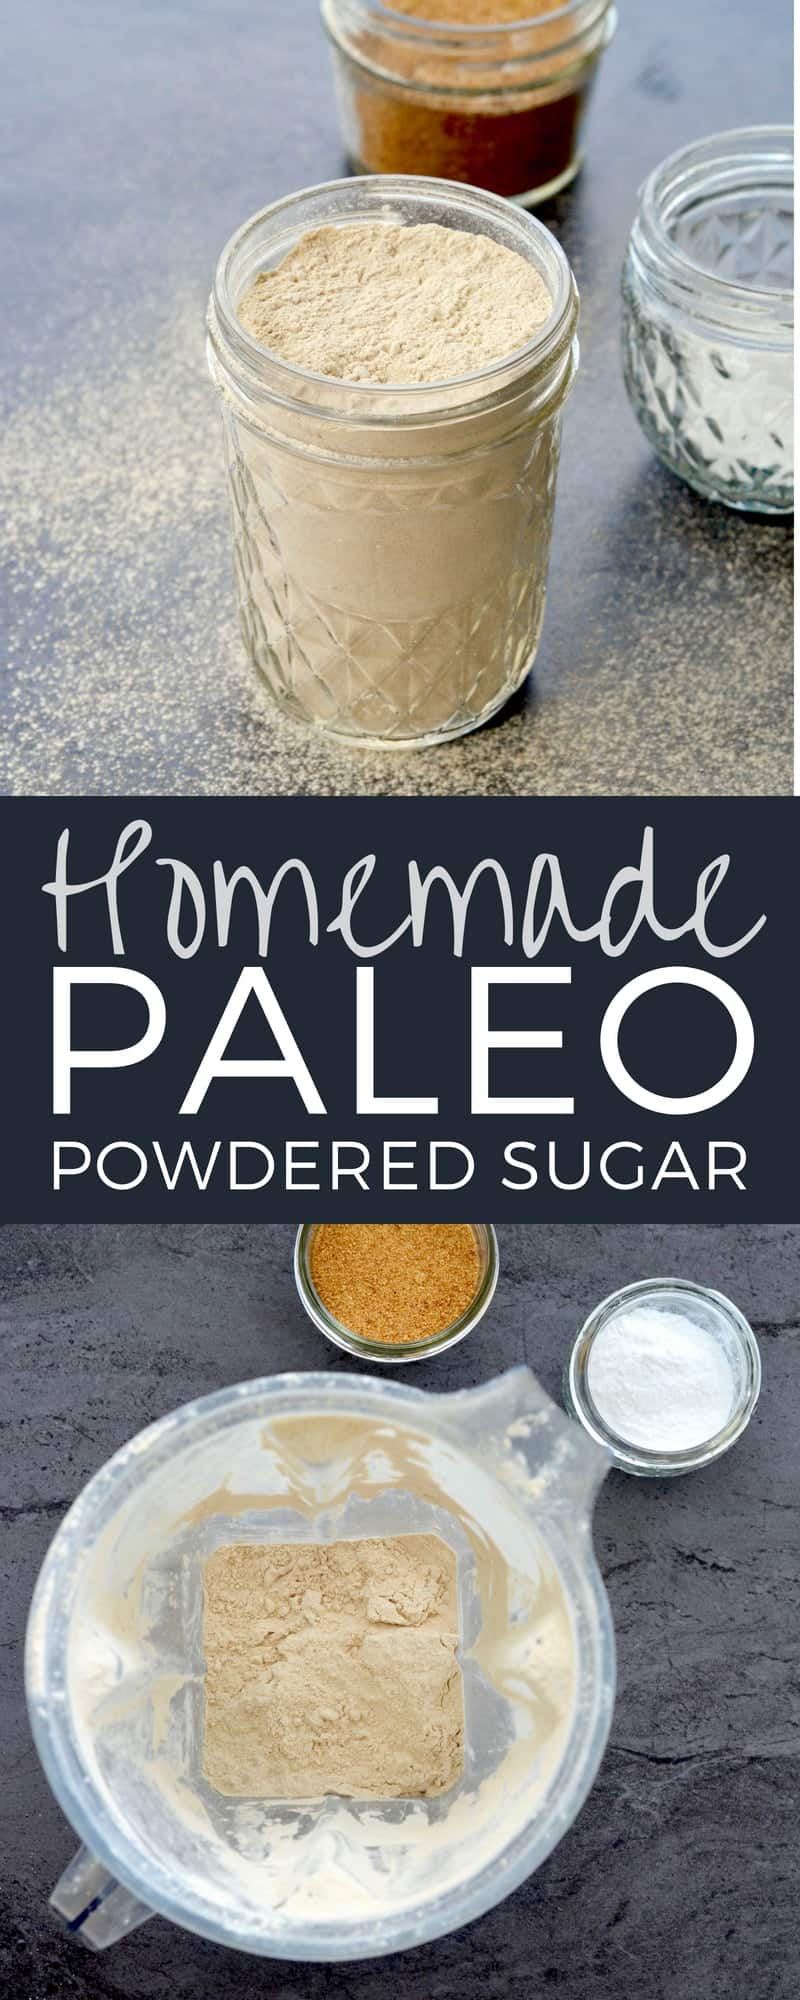 Homemade Paleo Powdered Sugar Recipe! Make your own healthy powdered sugar in 5 minutes with 2 ingredients! Gluten-free, dairy-free, refined sugar free, paleo & vegan! #homemade #powderedsugar #paleo #vitamix #easy #5minutes #2ingredients